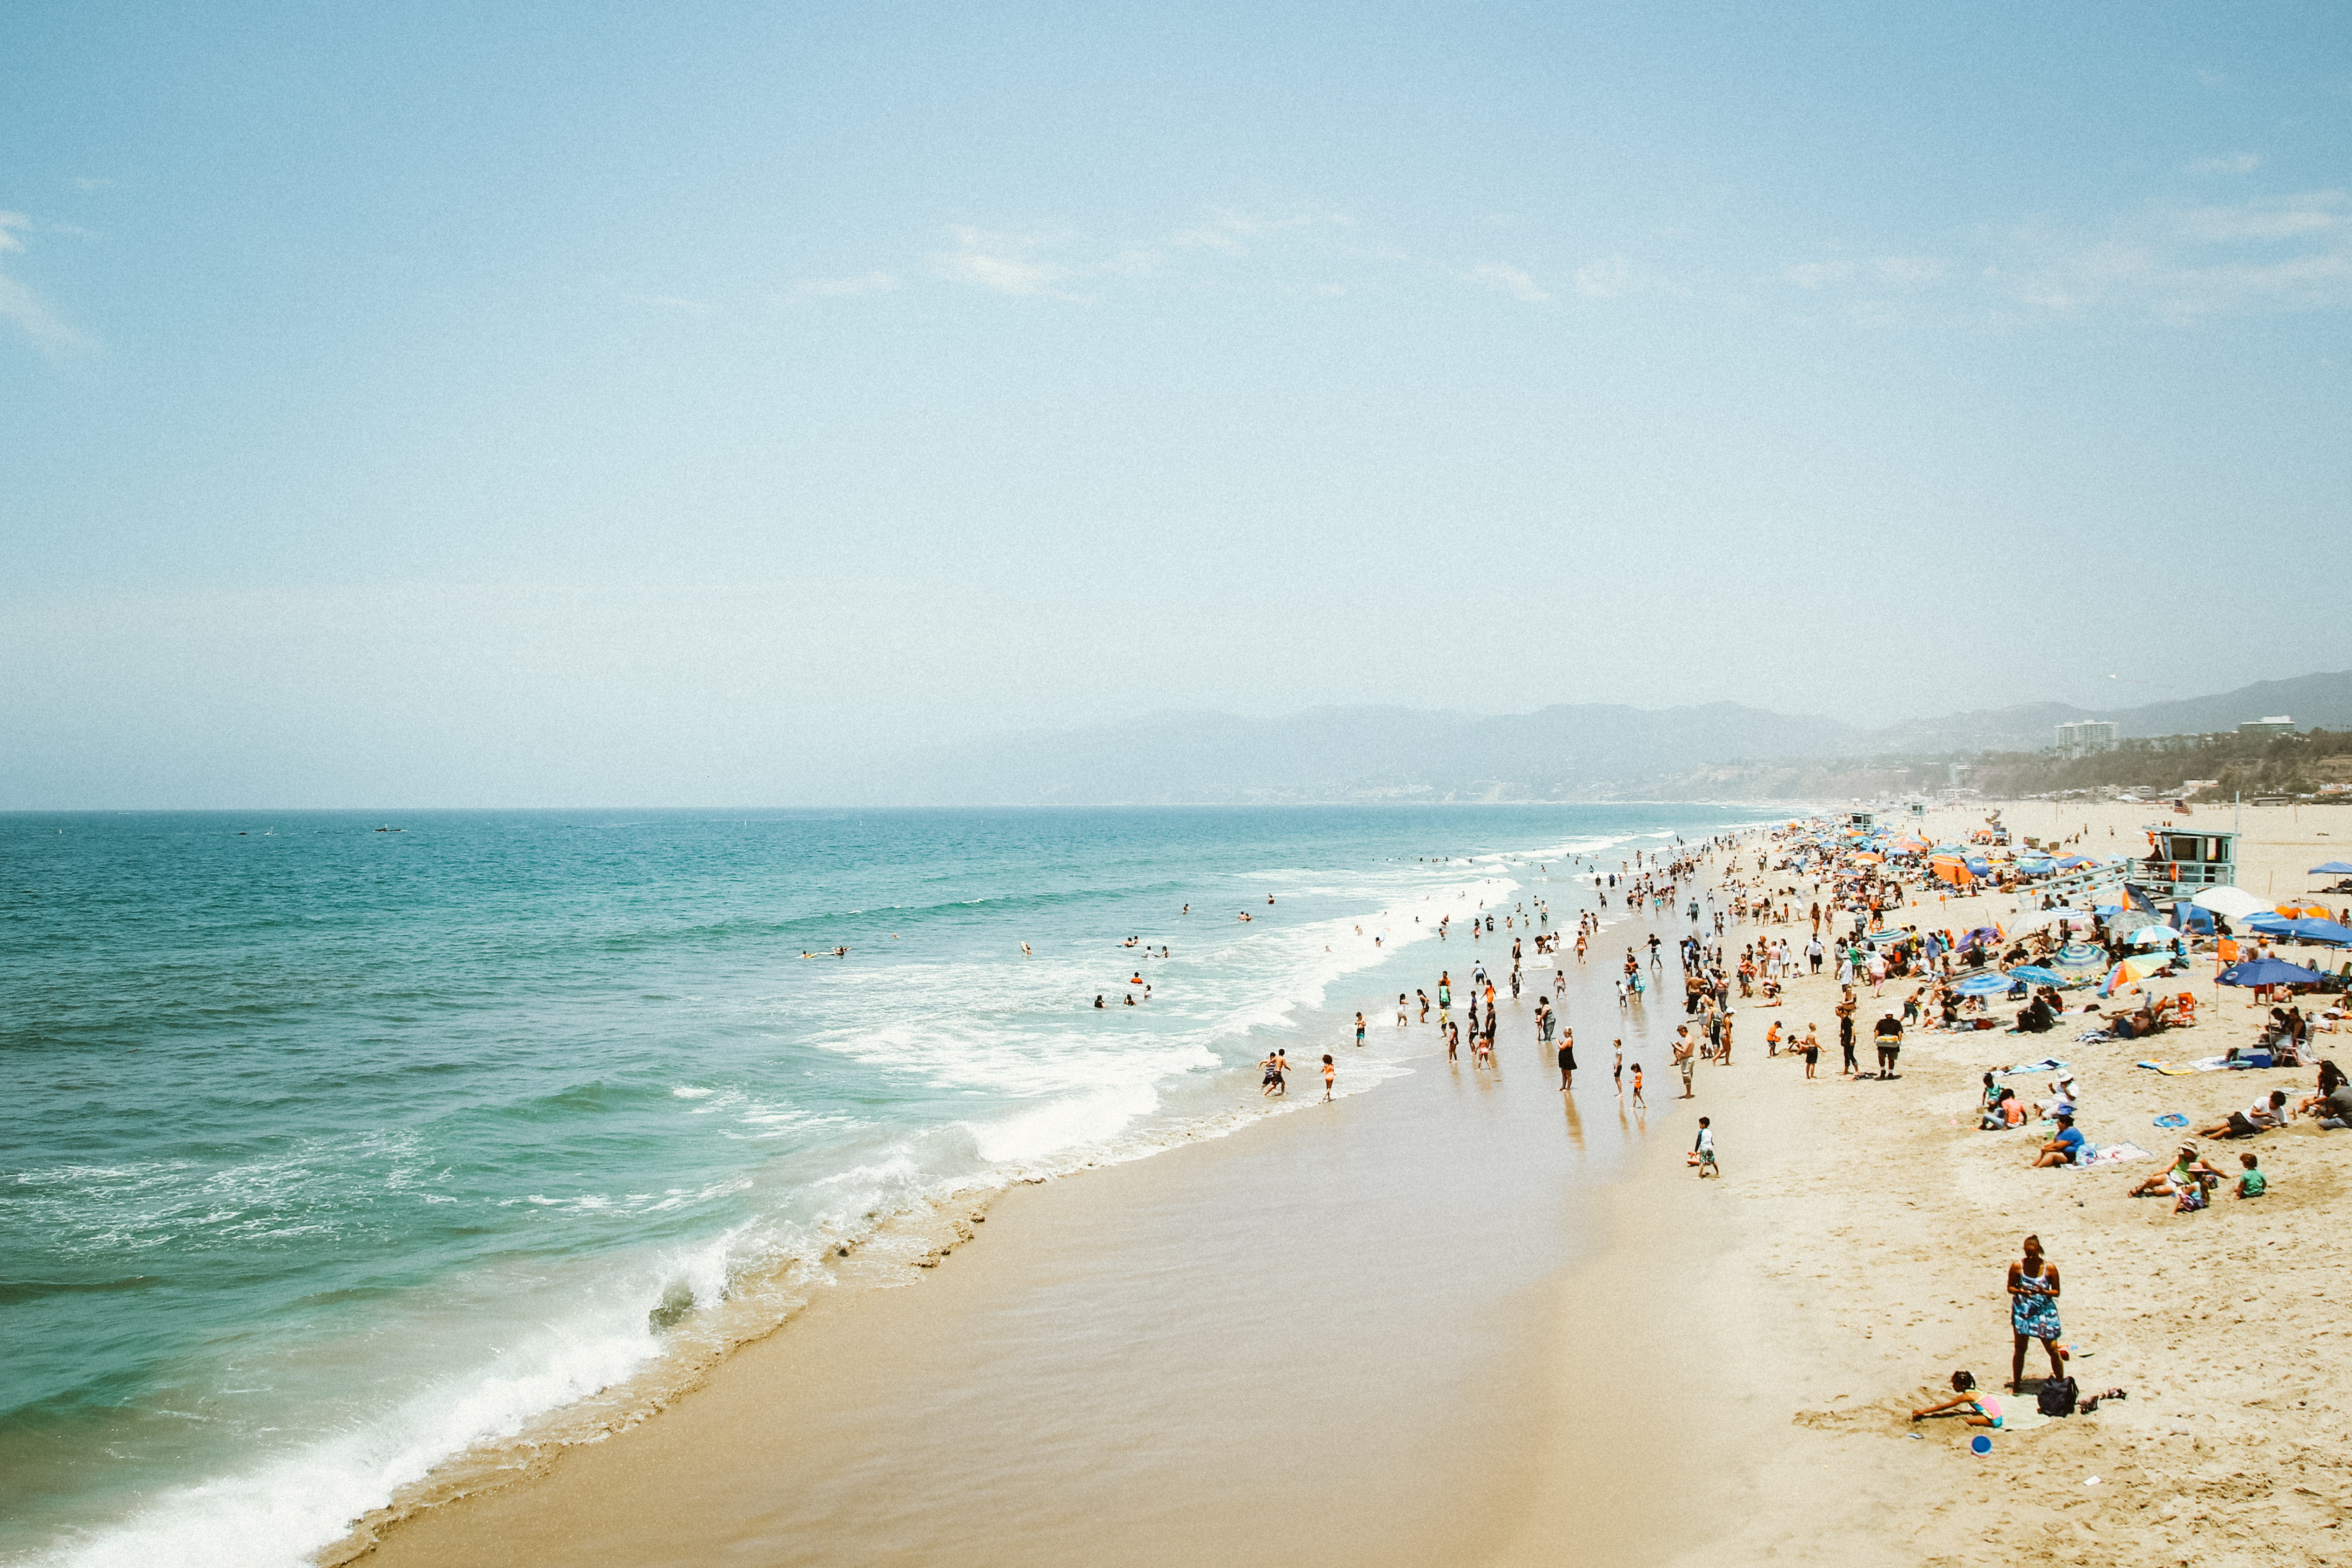 A crowded beach on a sunny day in Santa Monica